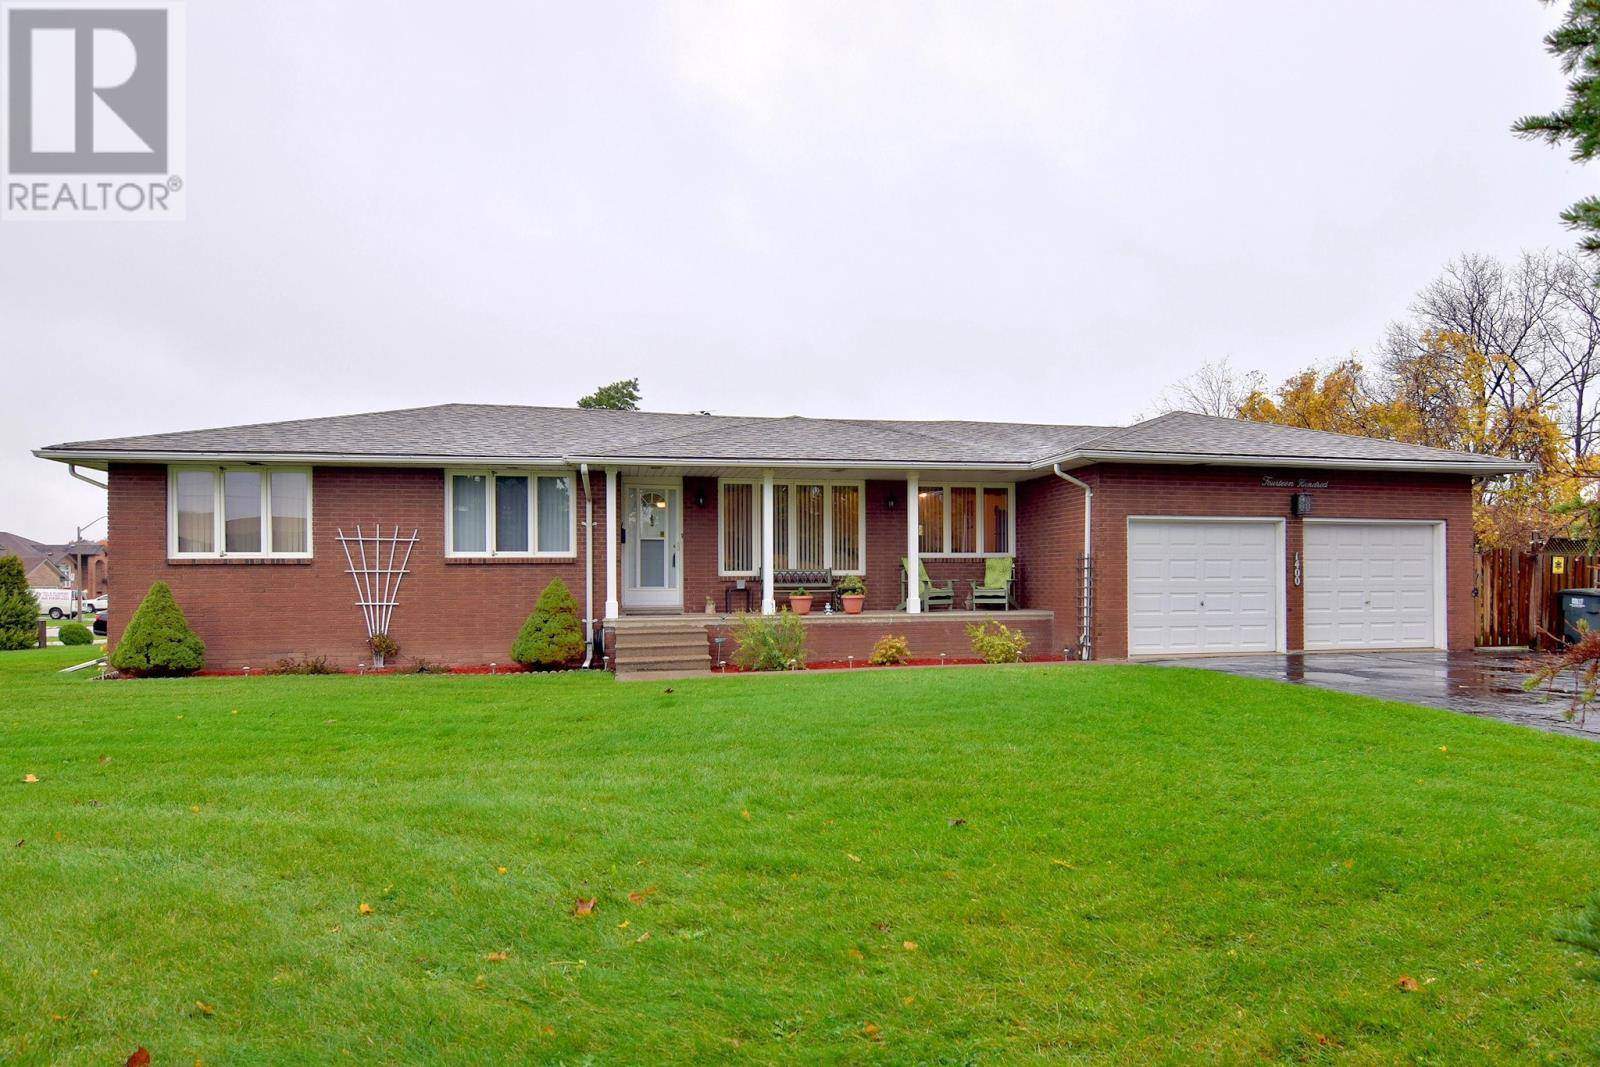 House for sale at 1400 North Service Rd East Windsor Ontario - MLS: 19027787